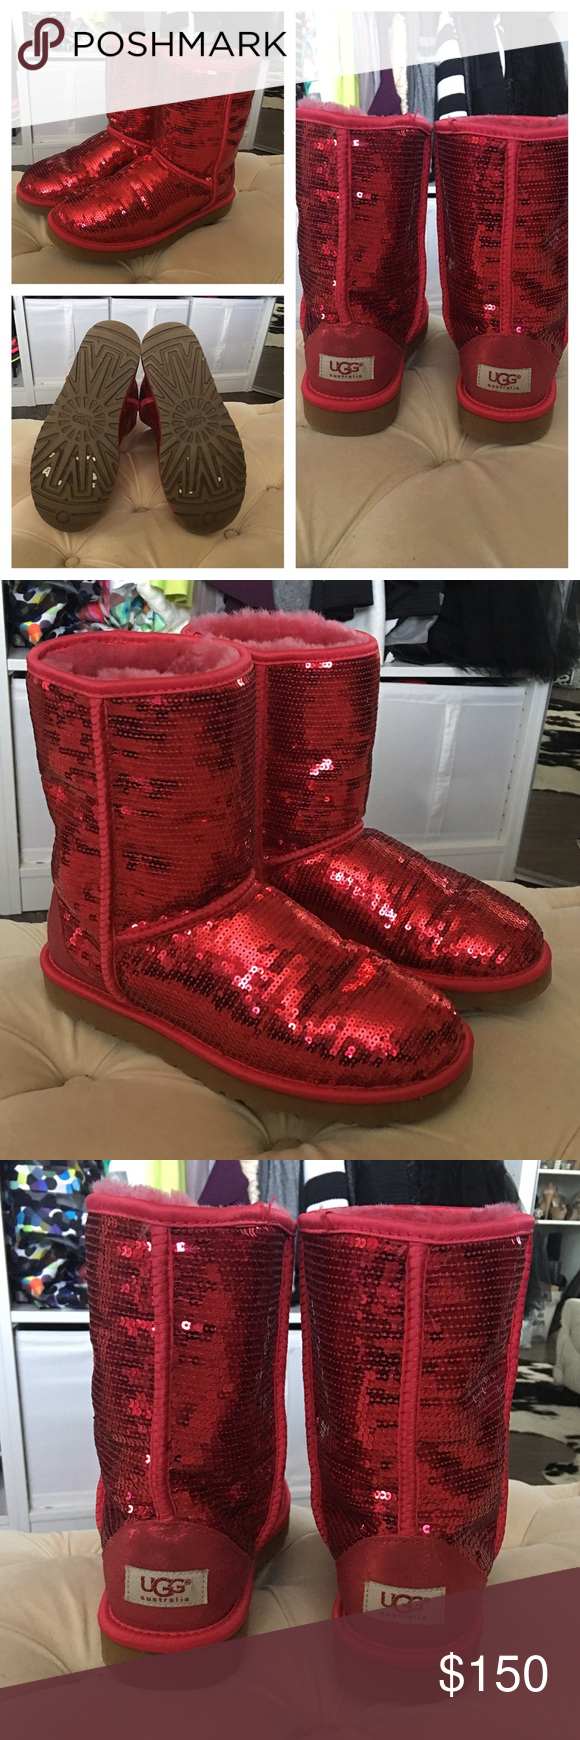 fdab11770a2 Ruby Red Sequin UGGS Size 8 Only worn in the house twice. Sticker ...